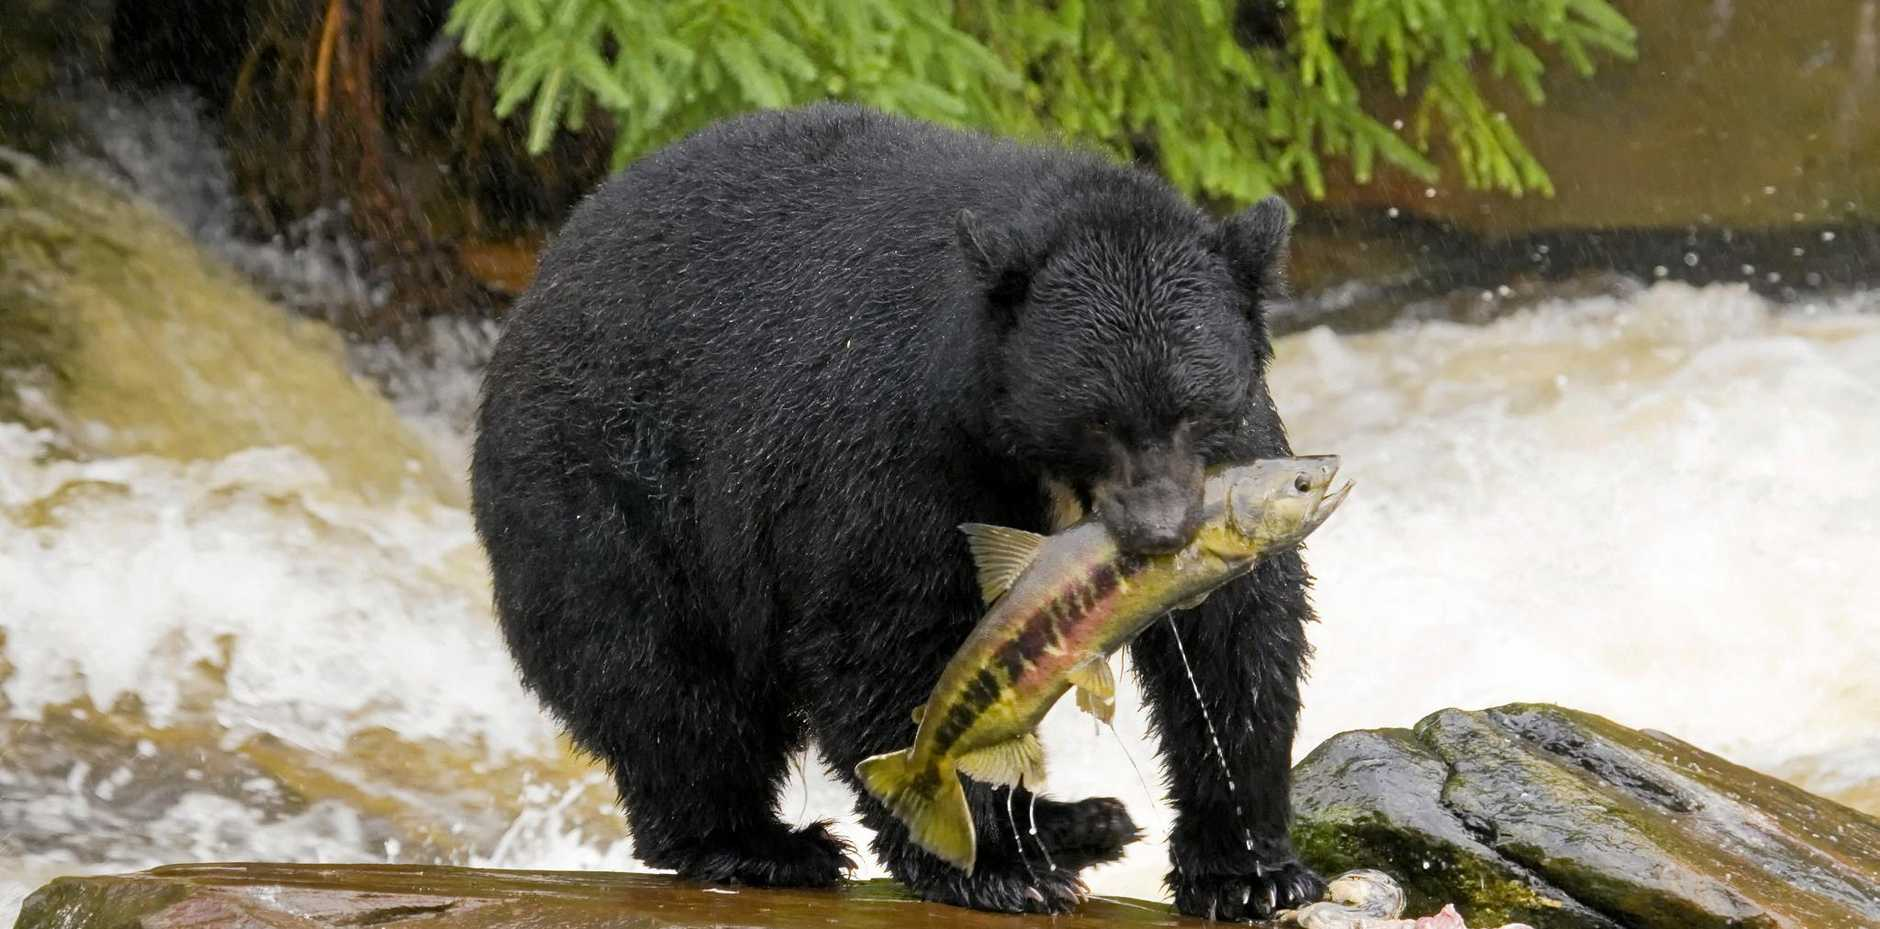 The American black bear (Ursus americanus) is North America's smallest and most common species of bear.